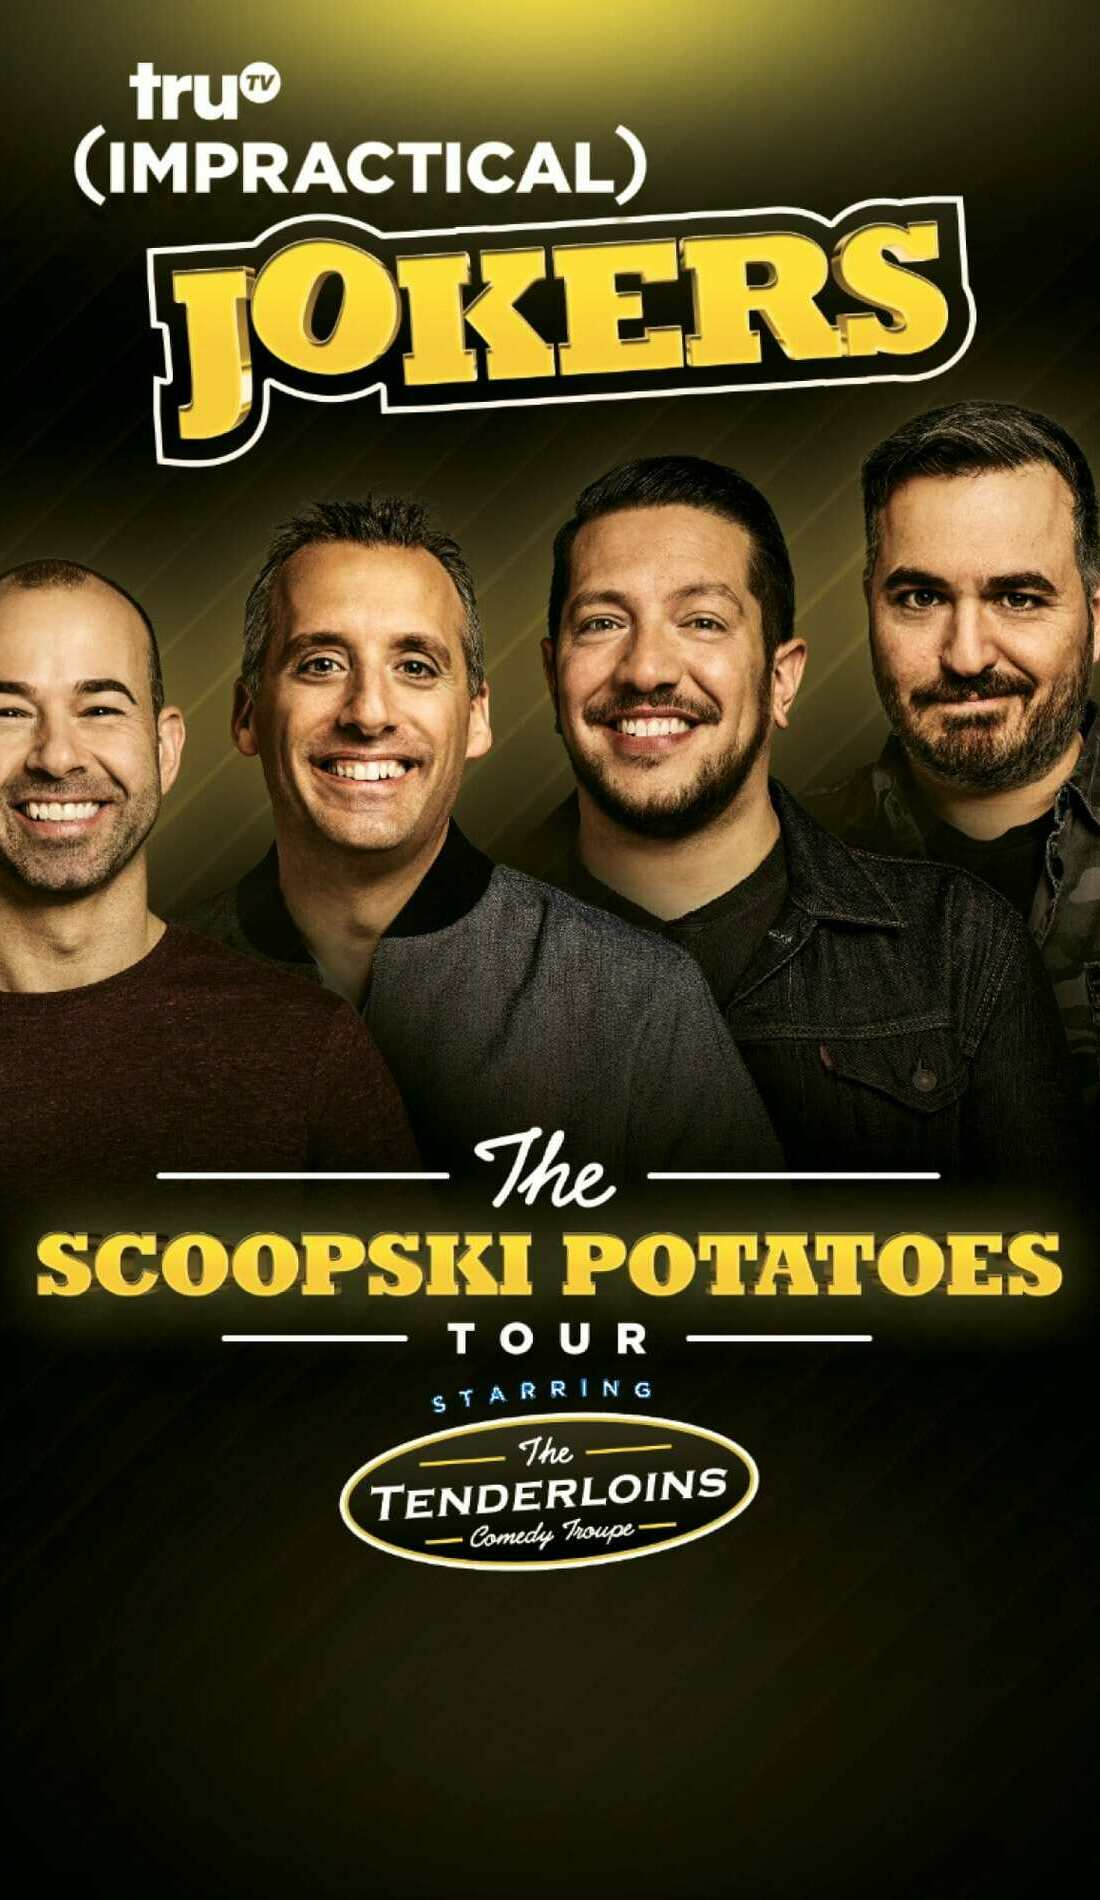 A Impractical Jokers live event